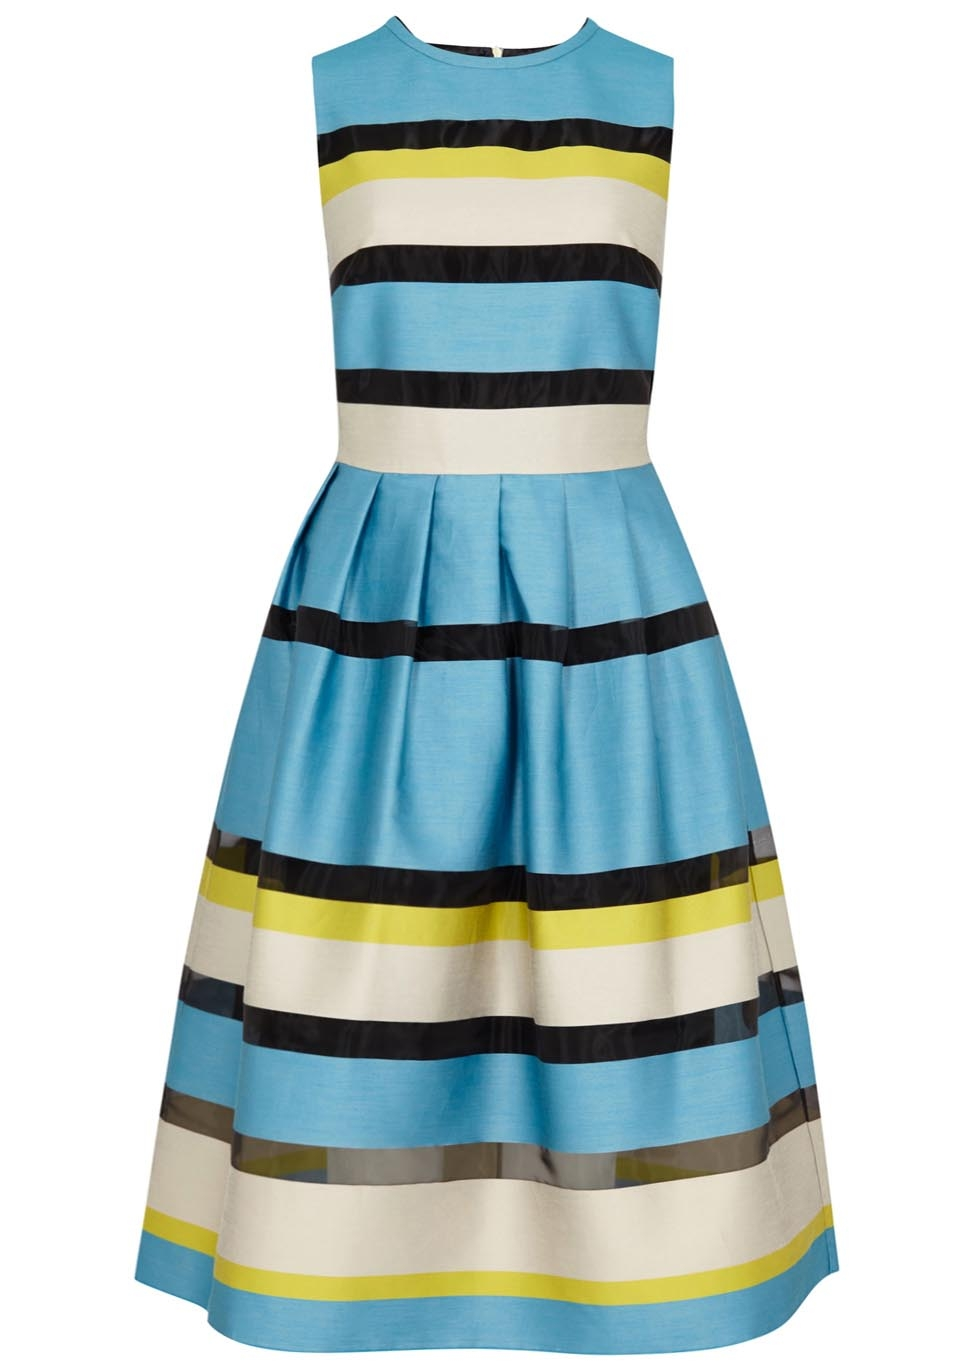 Paul Smith BLACK striped cotton blend dress, £275